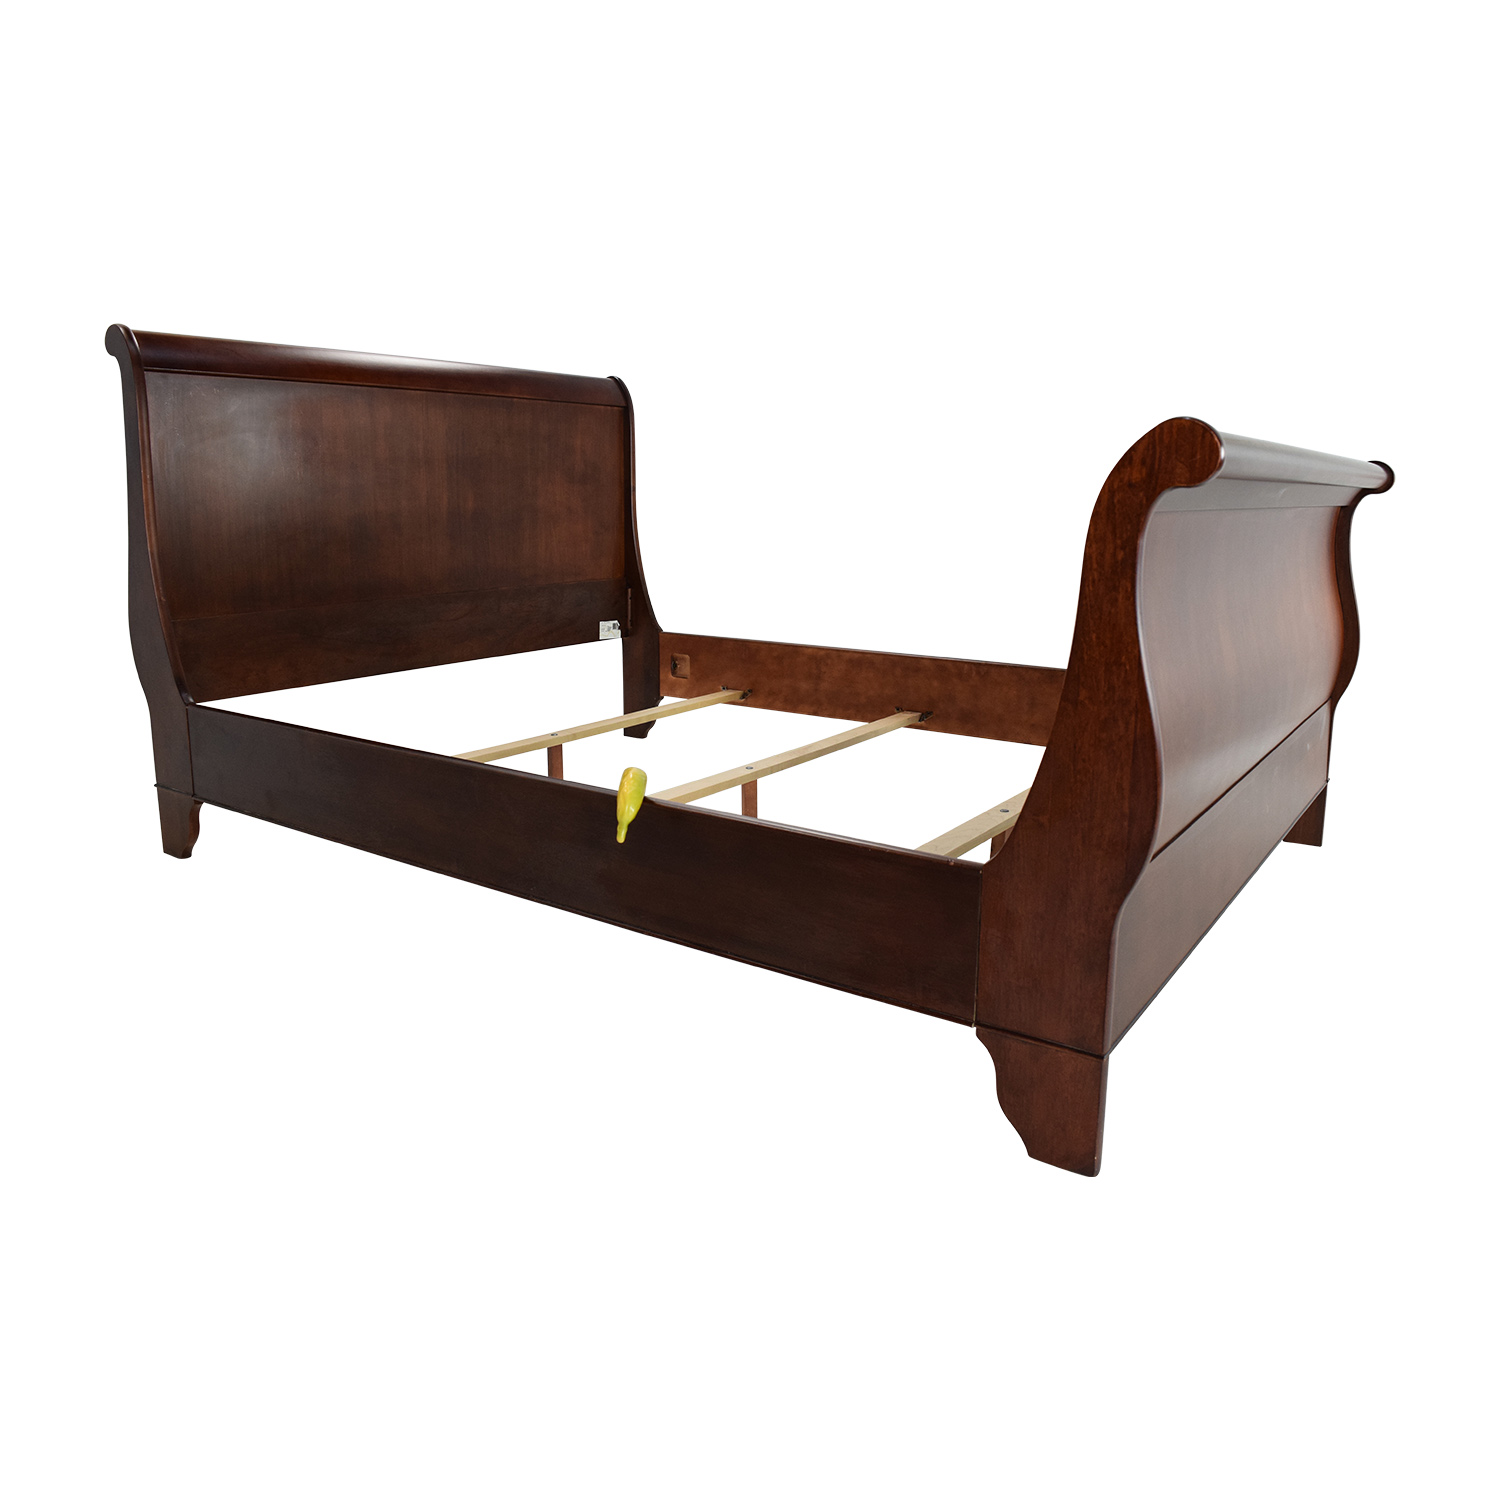 81 Off Macy 39 S Macy 39 S Queen Sleigh Bed Beds